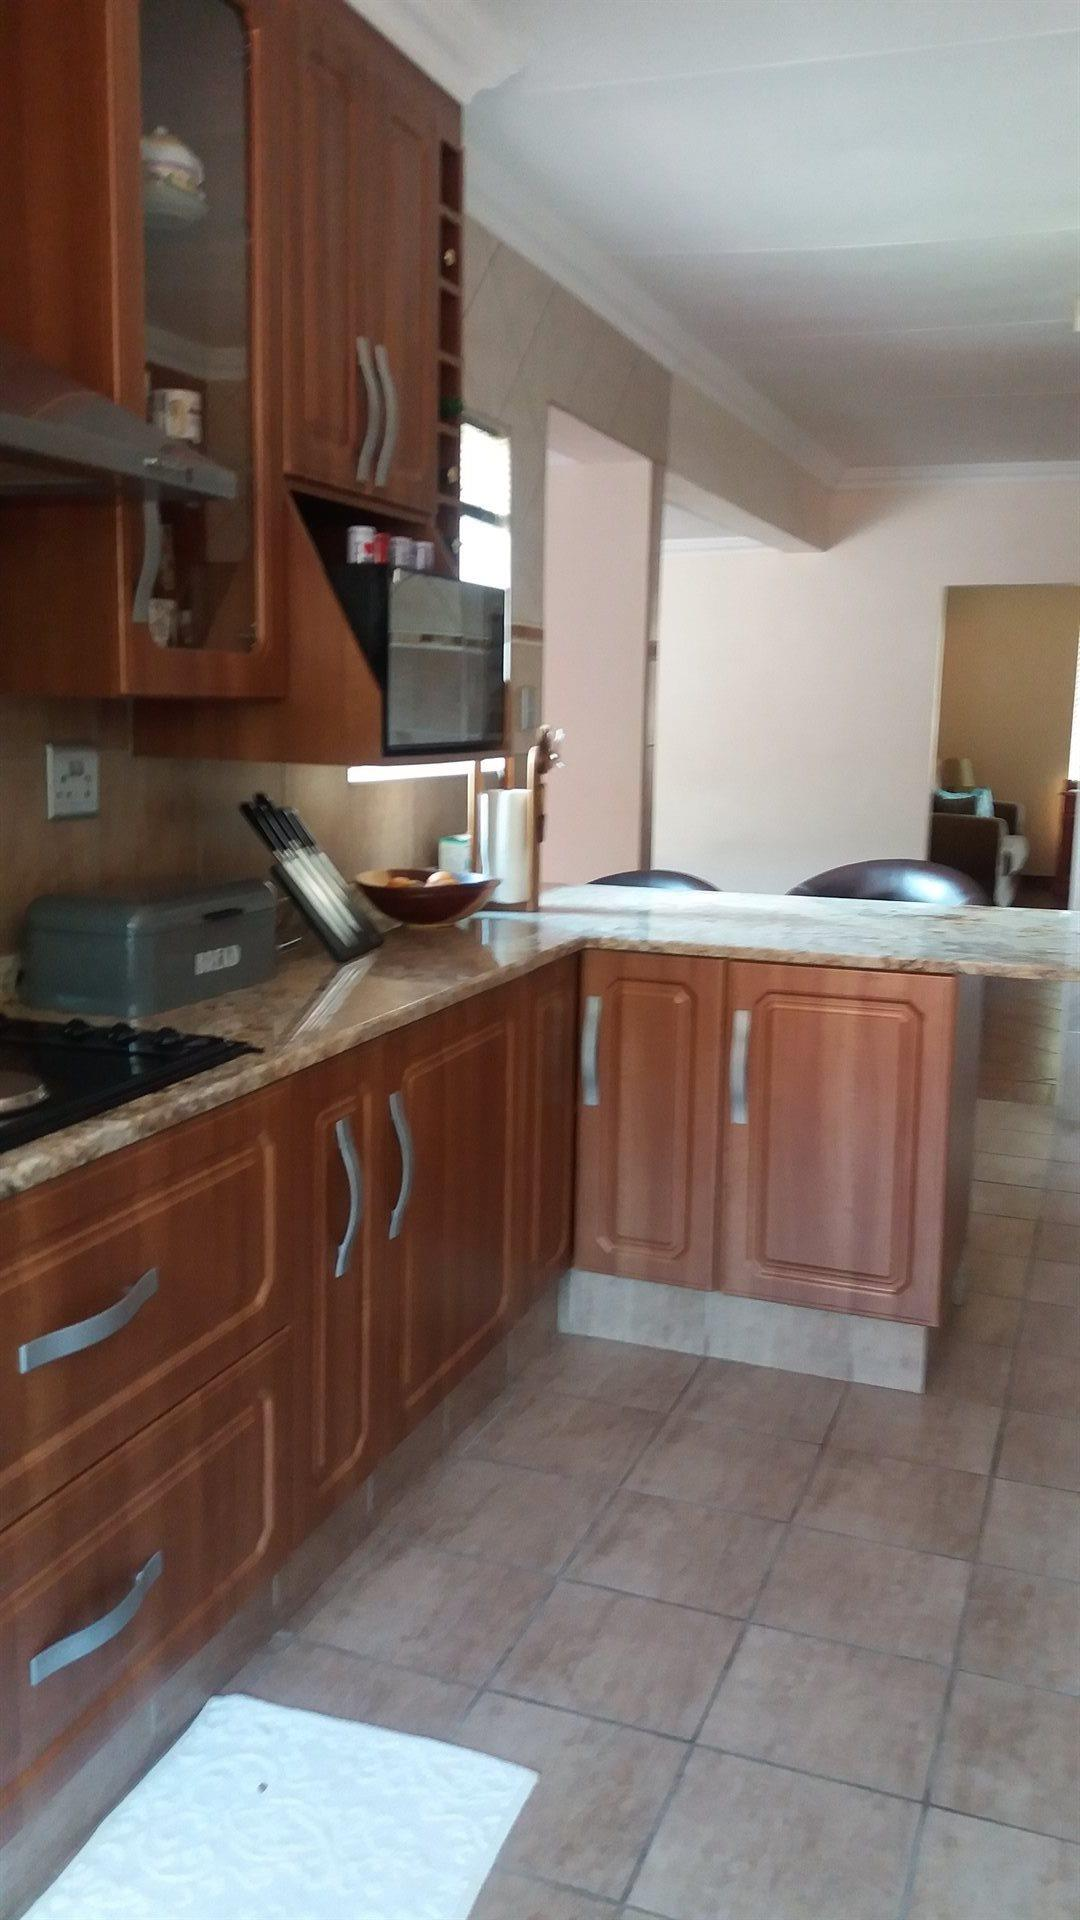 Theresapark property for sale. Ref No: 13566719. Picture no 7